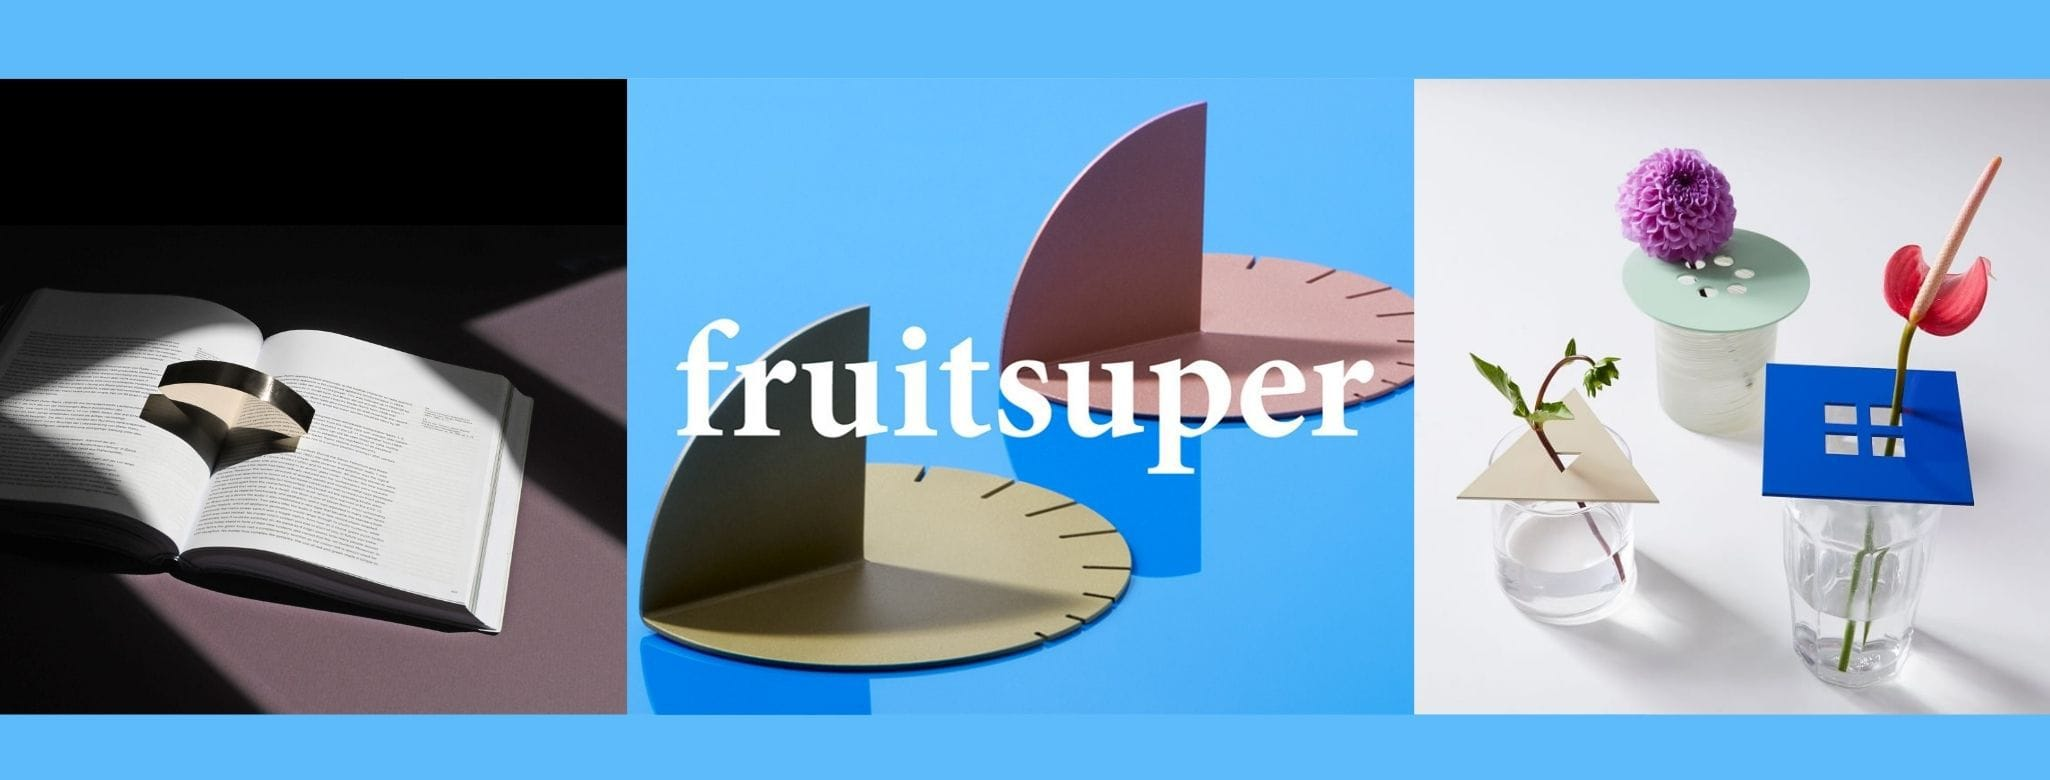 fruitsuper Seattle Gift Guide